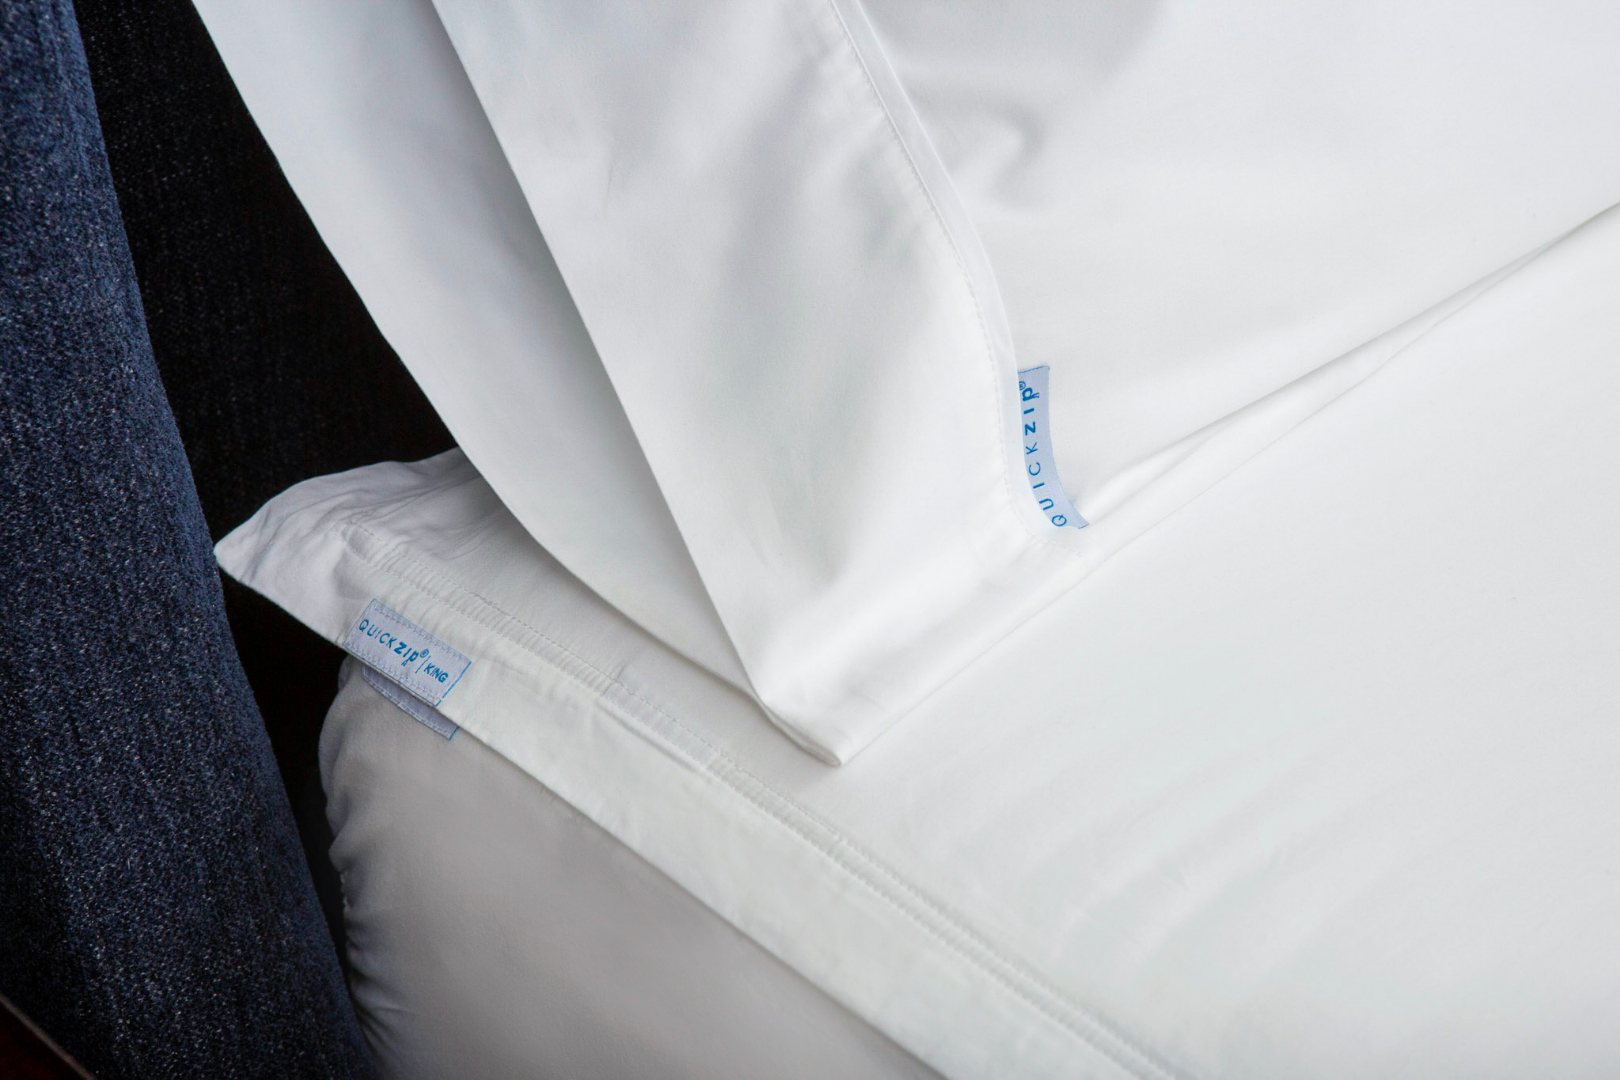 QuickZip -Adjustable Bed Sheets that zip on and won't pop off